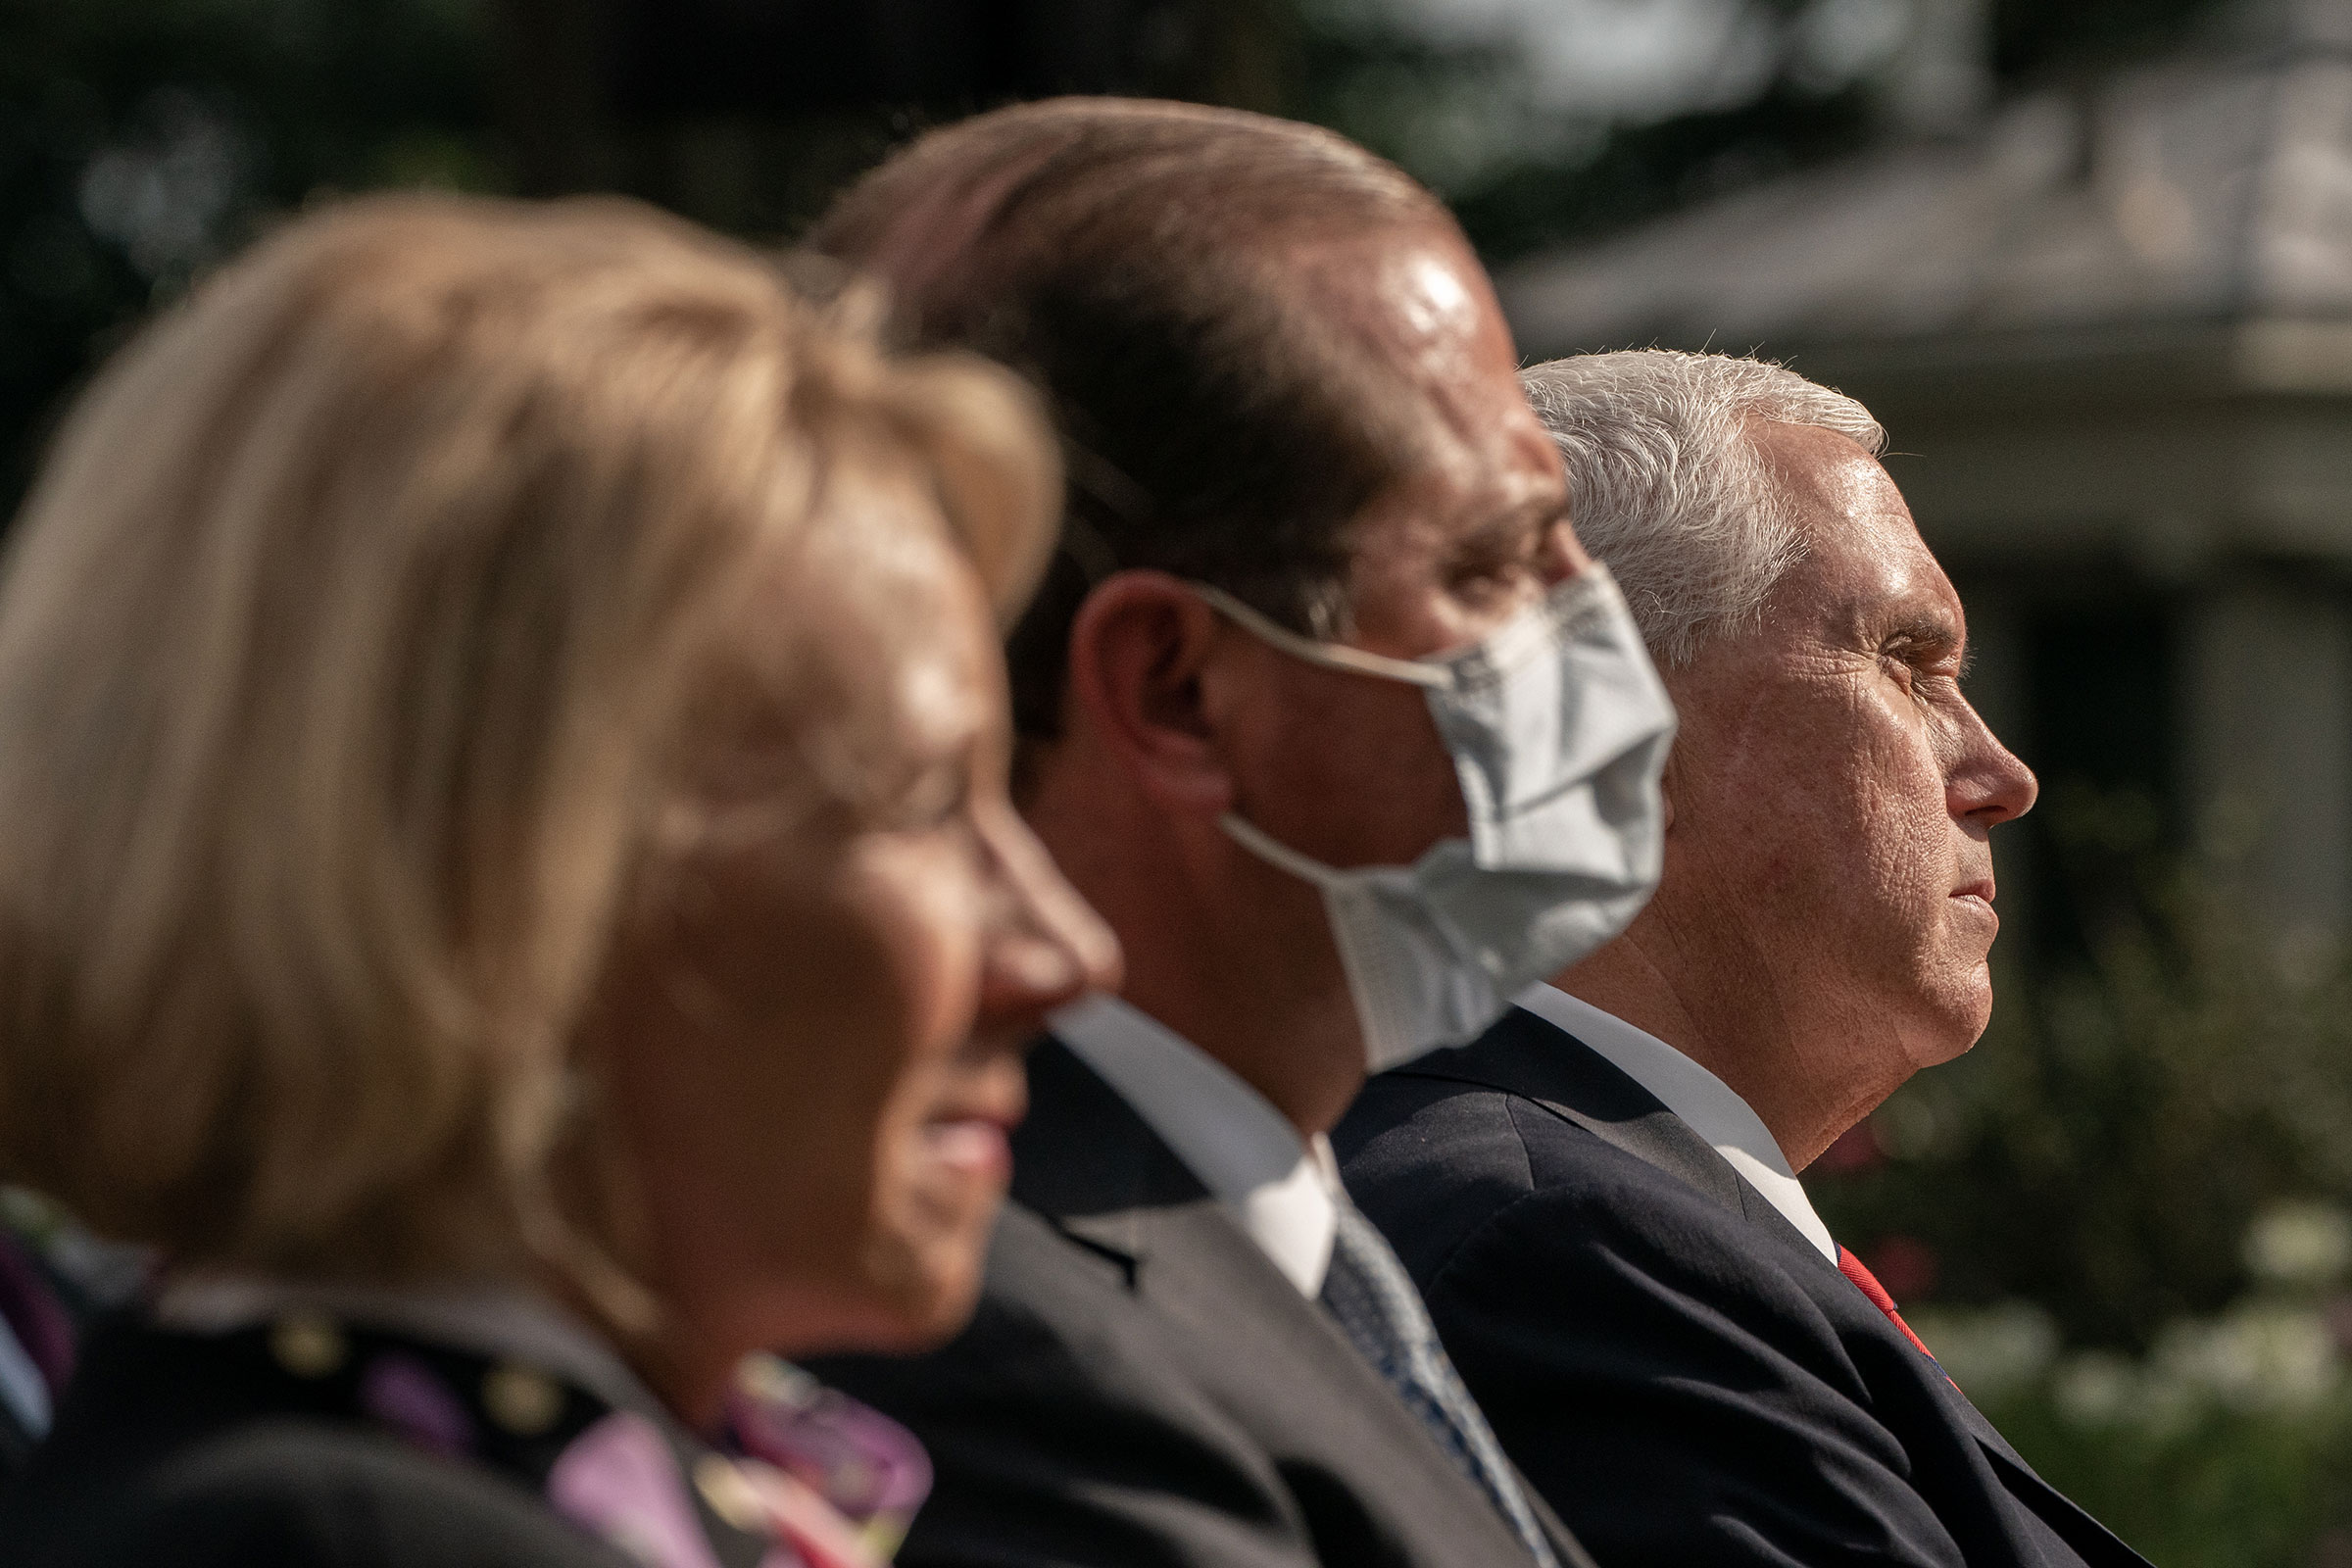 United States Vice President Mike Pence listens during an update by United States President Donald Trump on the nation's Coronavirus testing strategy in the Rose Garden of the White House, in Washington, Sept. 28, 2020.